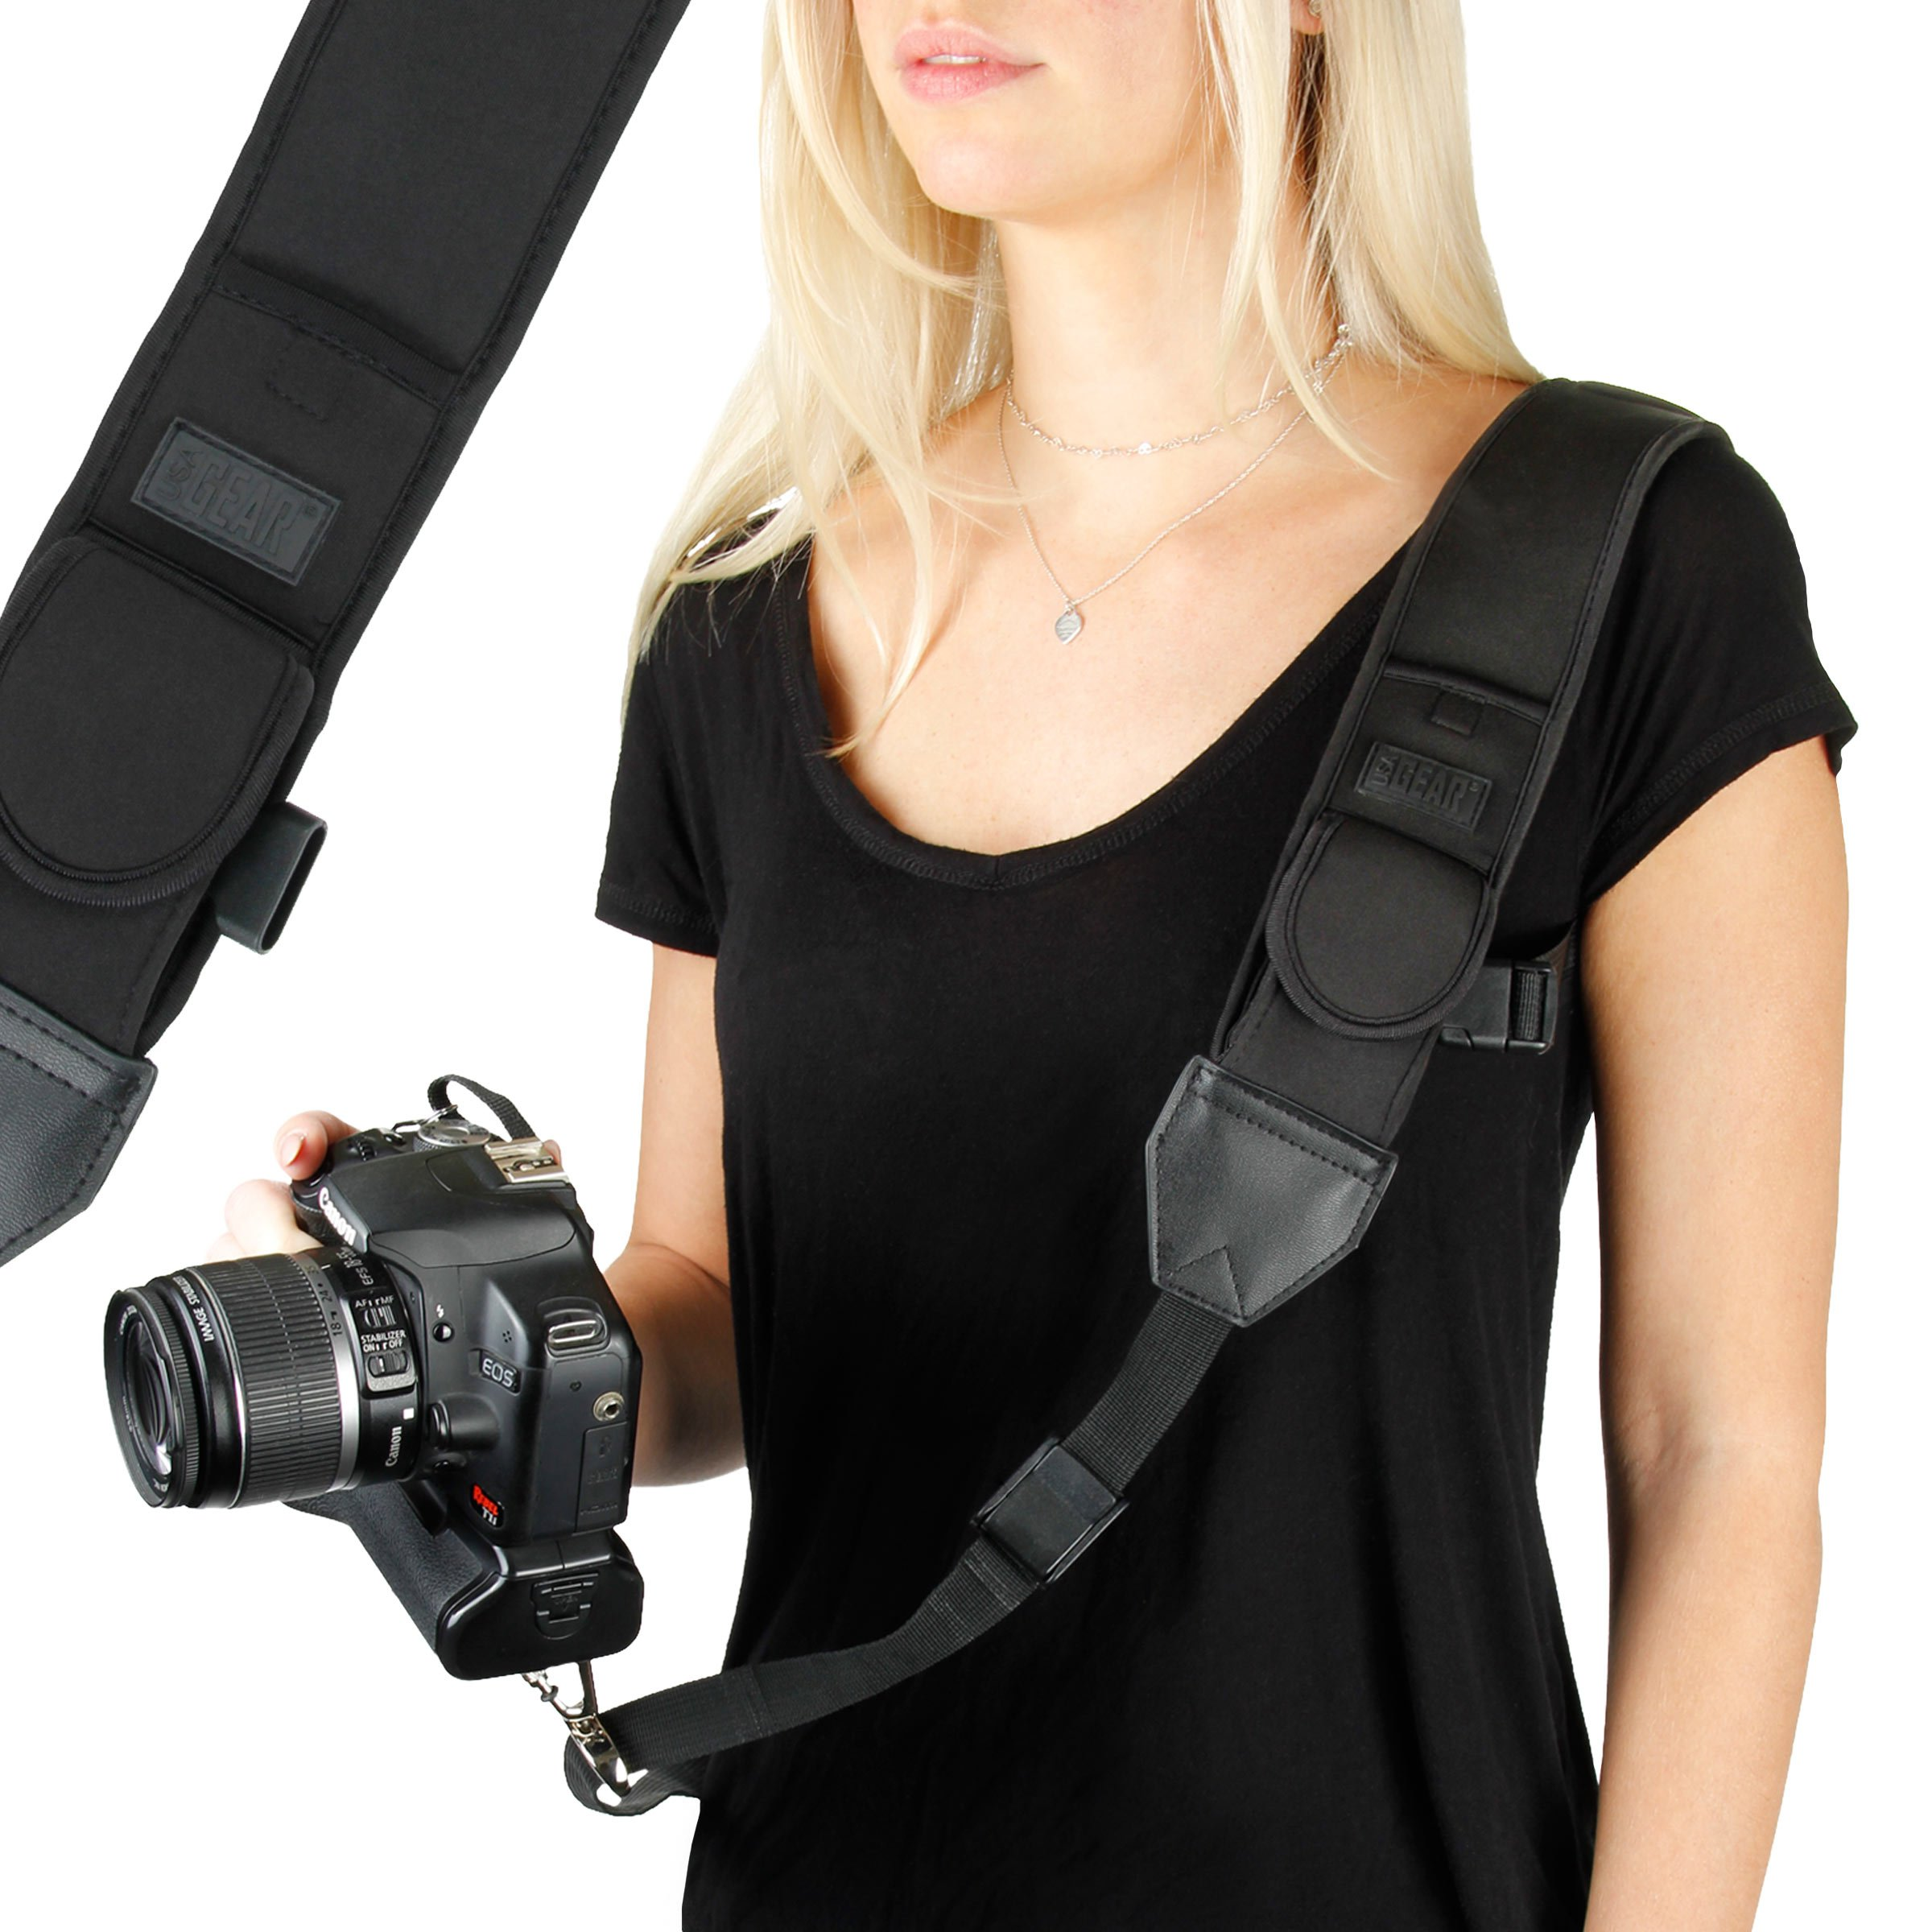 Camera Strap Shoulder Sling with Adjustable Black Neoprene, Accessory Pocket, Quick Release Buckle by USA Gear - Works with Canon, Fujifilm, Nikon, Sony and More DSLR, Mirrorless Cameras